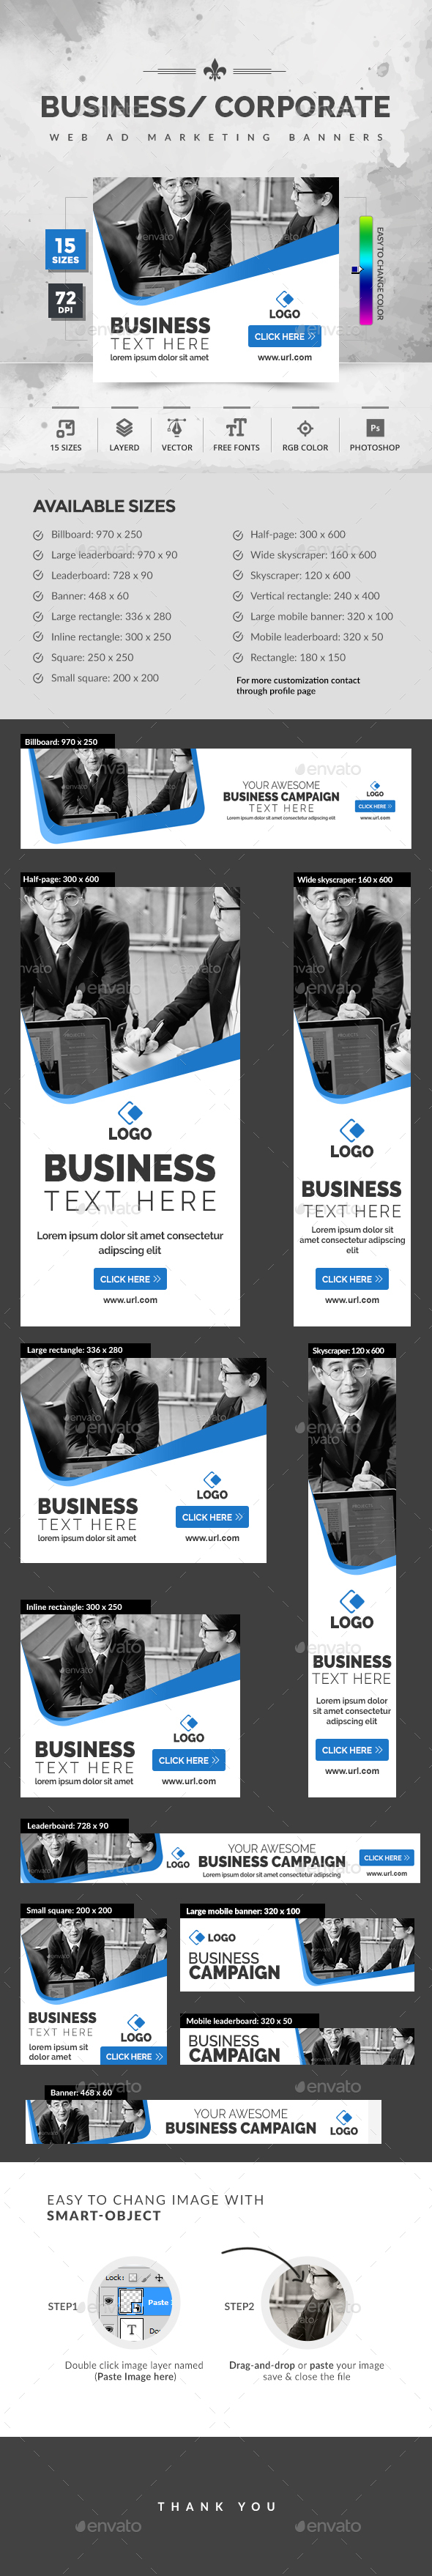 Business Banners - Banners & Ads Web Elements